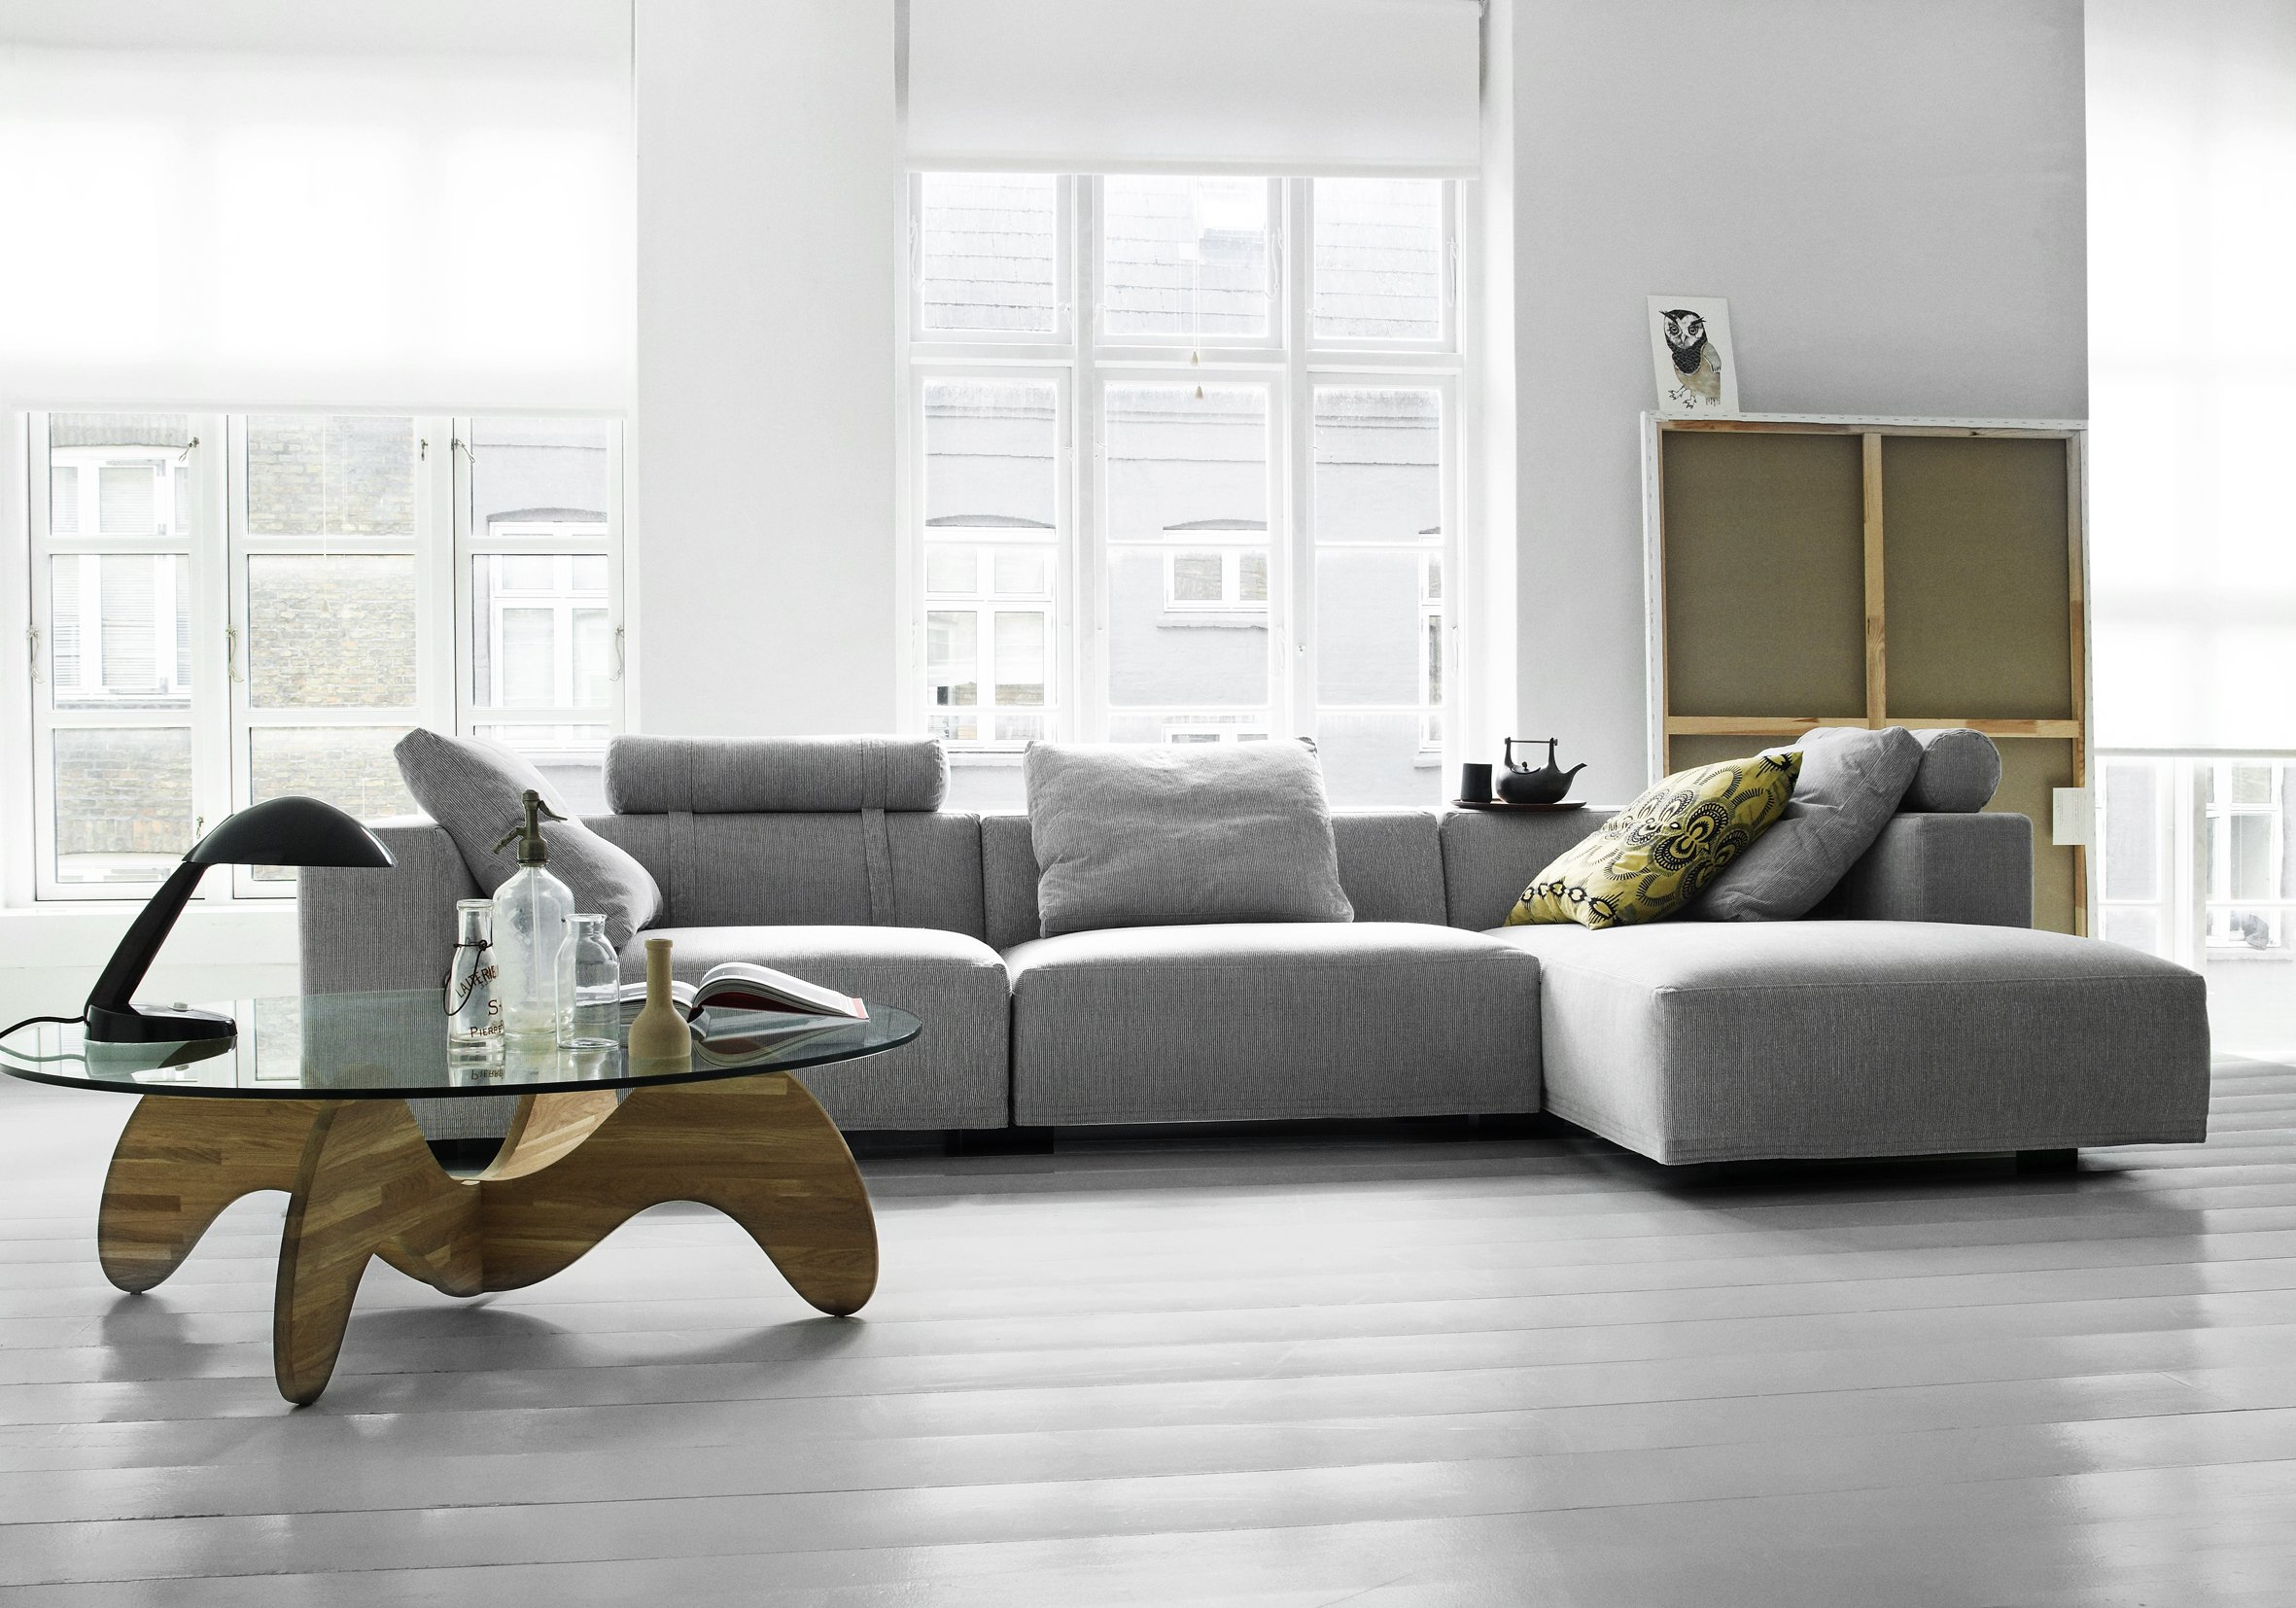 Eilersen Sofas Amp Modern Furniture San Francisco Ca